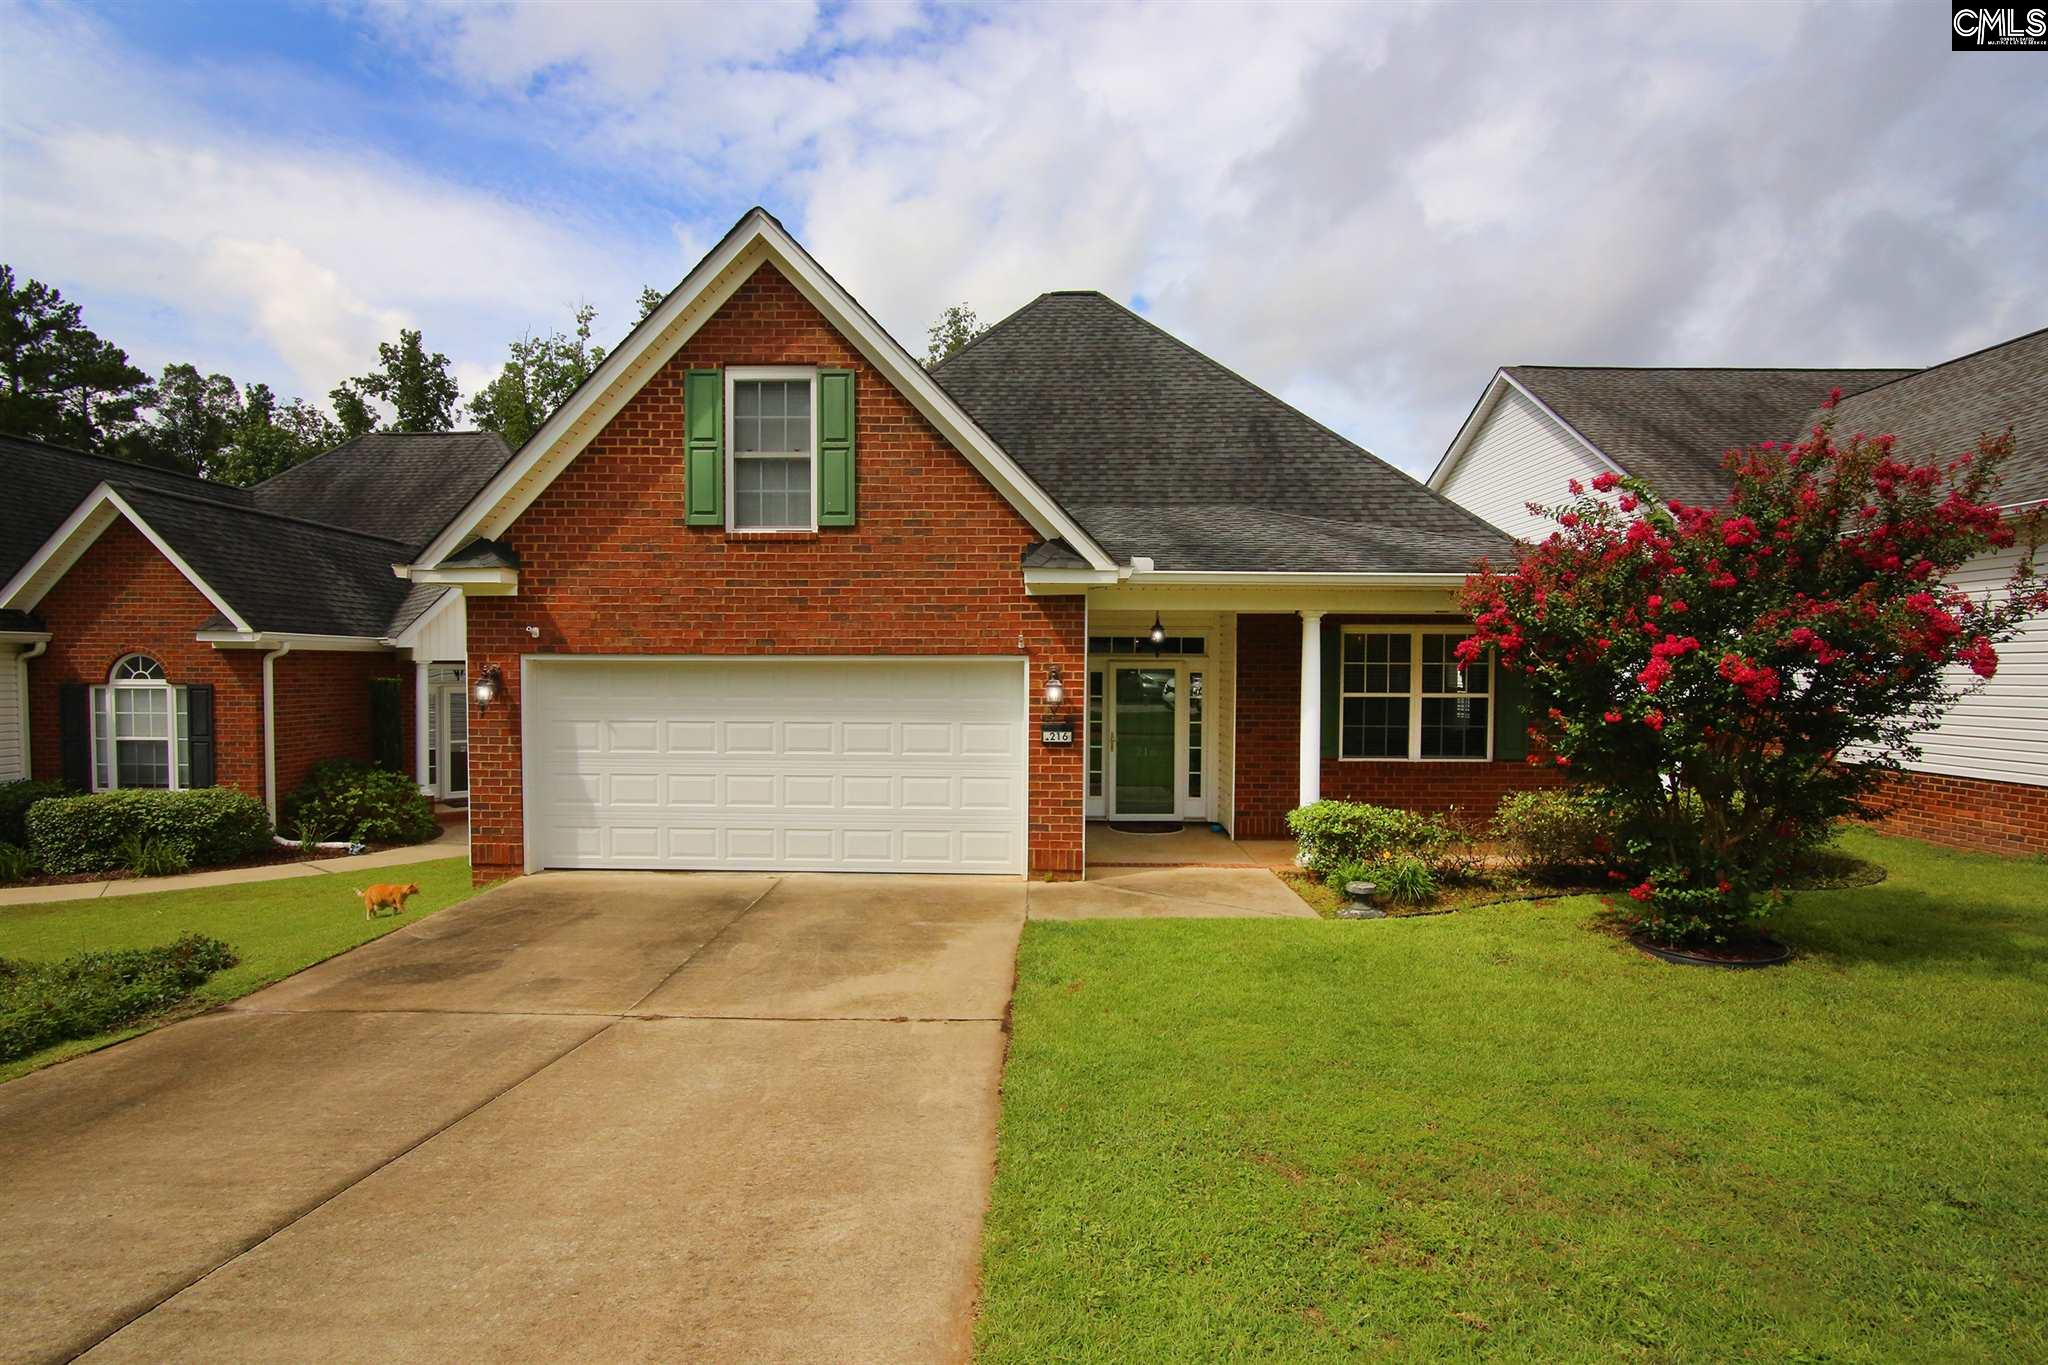 216 Powell Dr Lexington, SC 29072